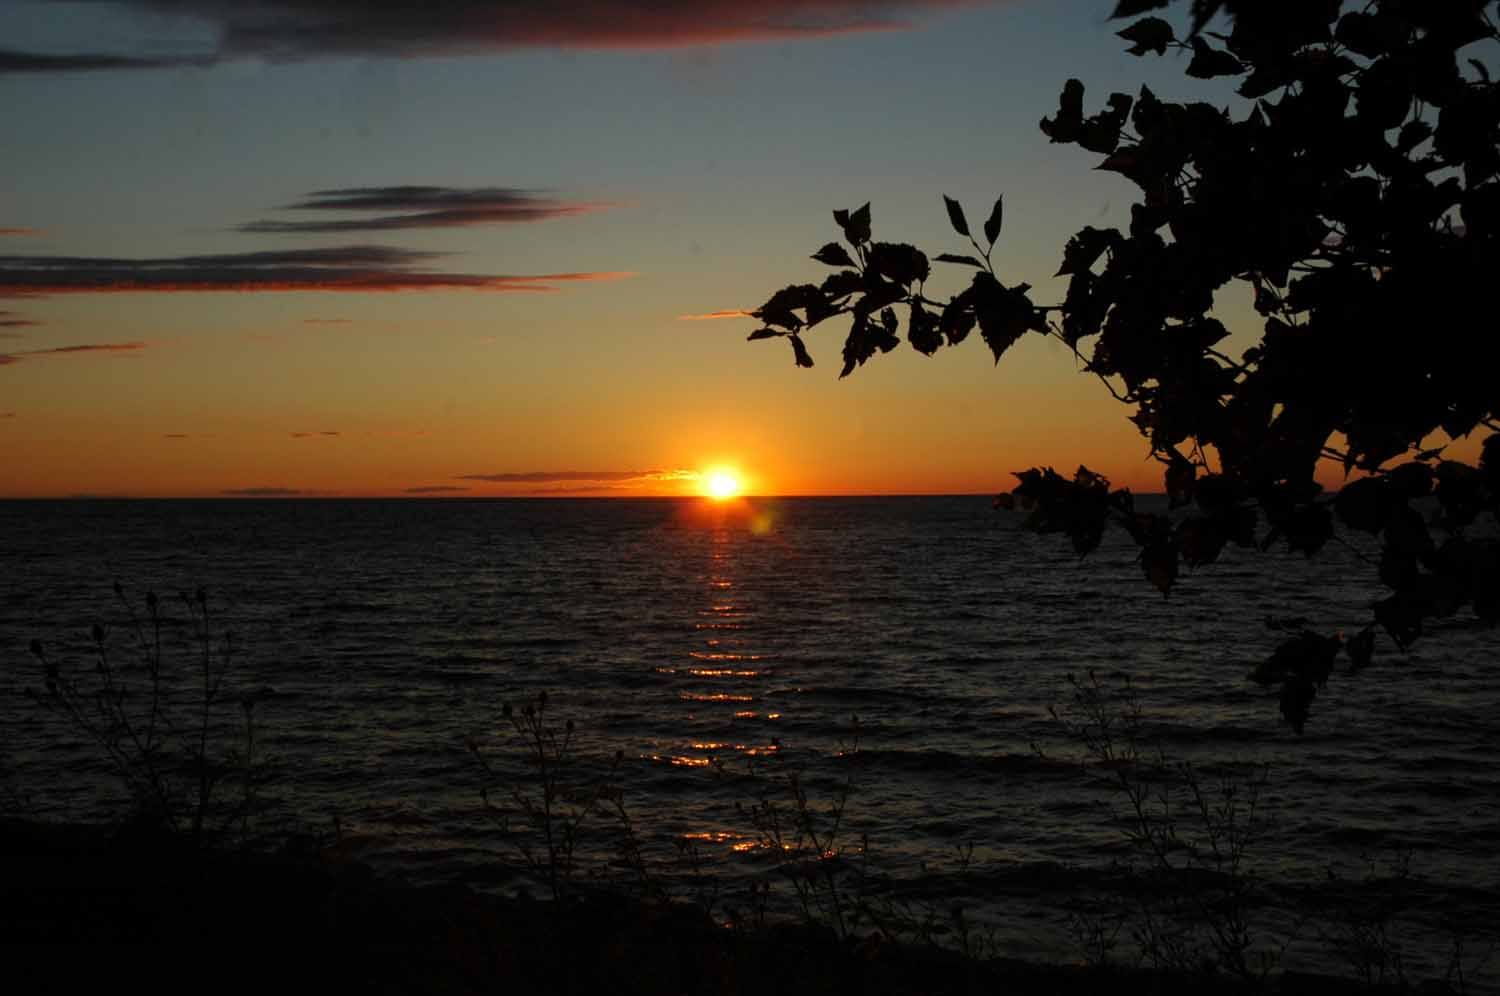 Sunset over Little Traverse Bay at Petoskey Magnus Park